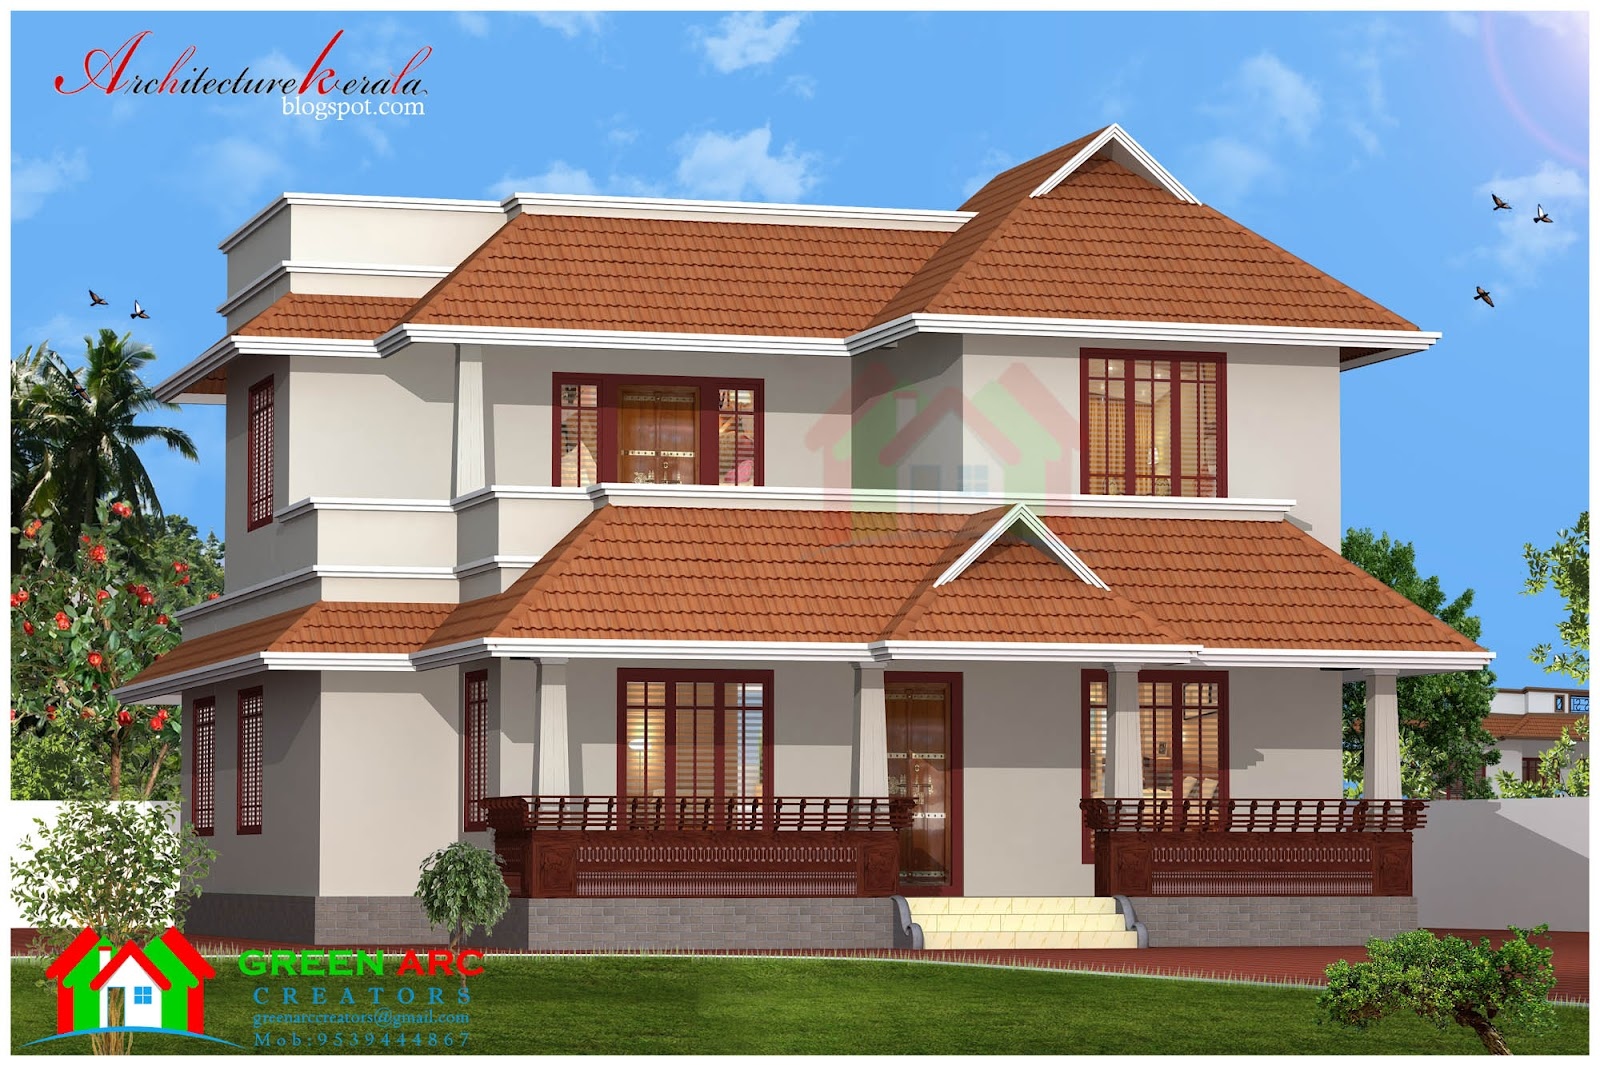 Architecture kerala traditional style kerala house plan for Home architecture design kerala